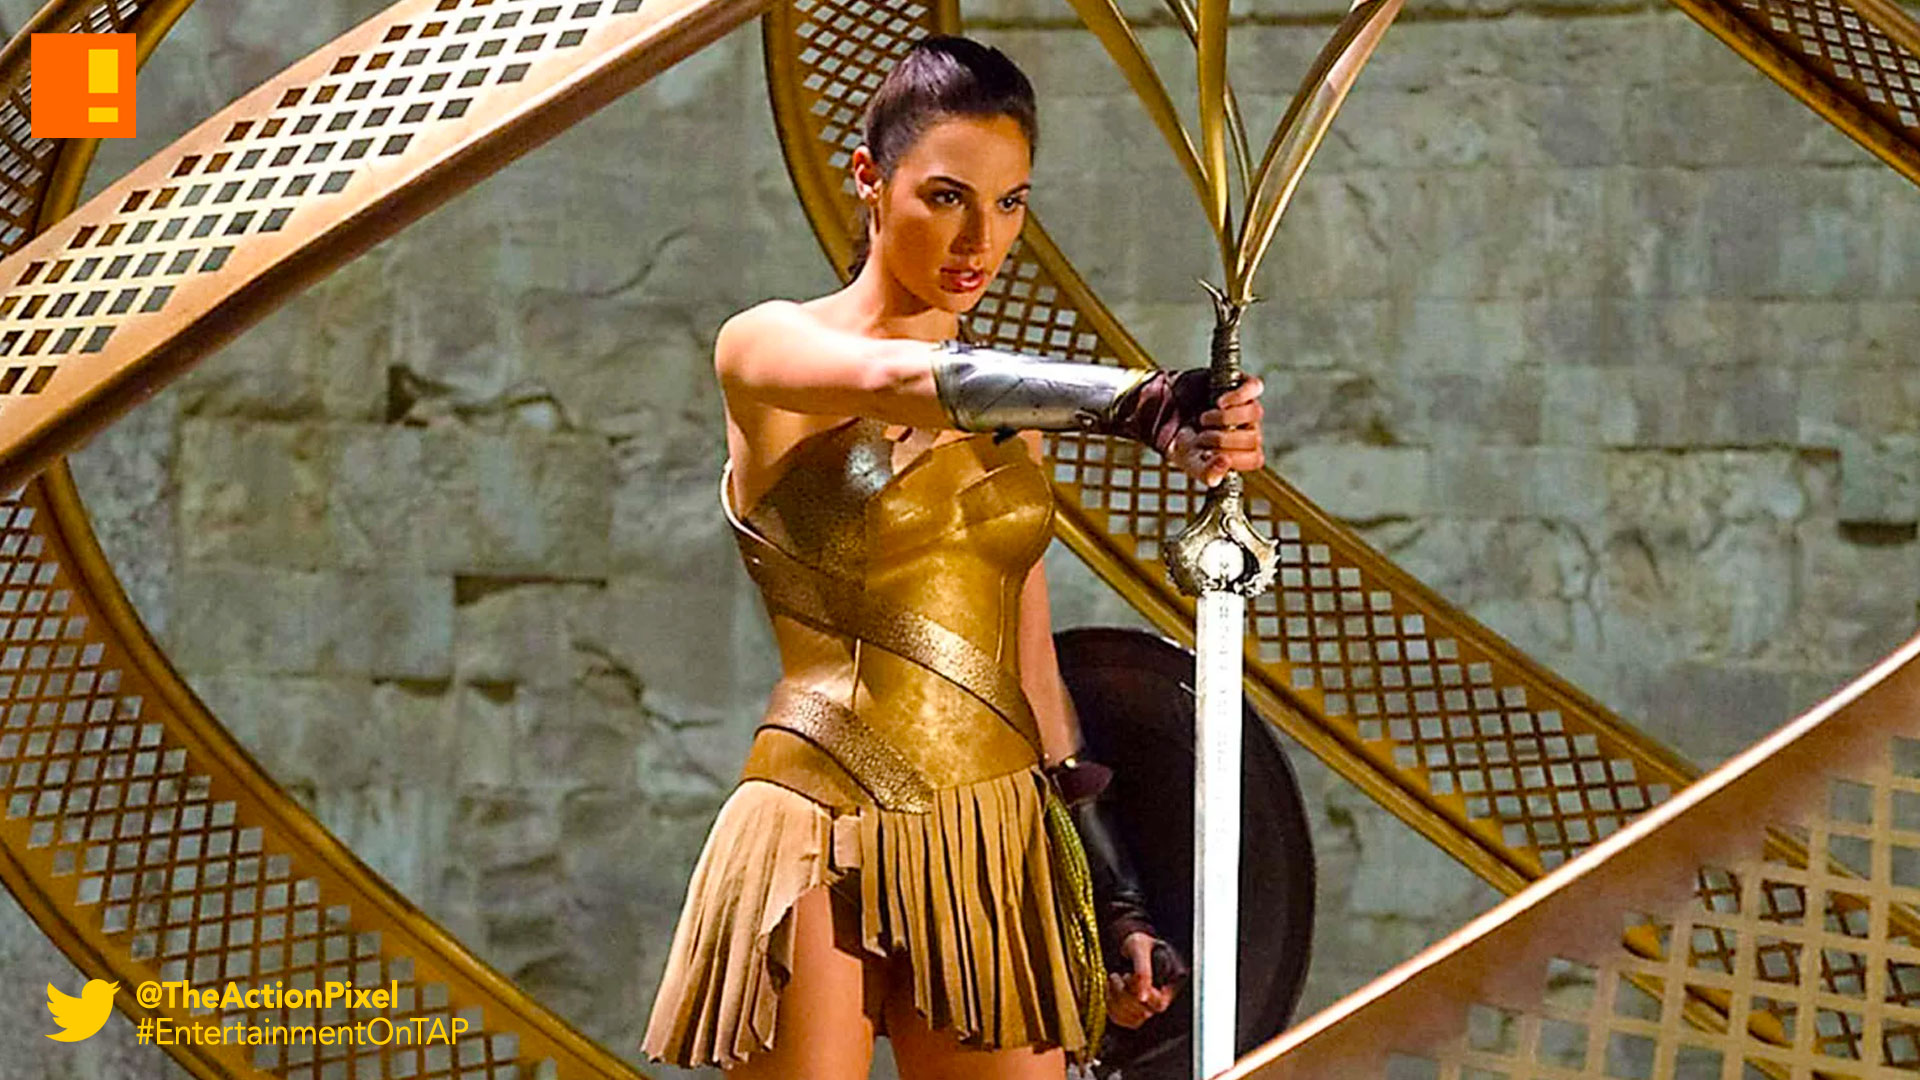 wonder woman, sword, the action pixel, entertainment on tap, wb pictures, warner bros. entertainment , the action pixel, gal gadot, ww,